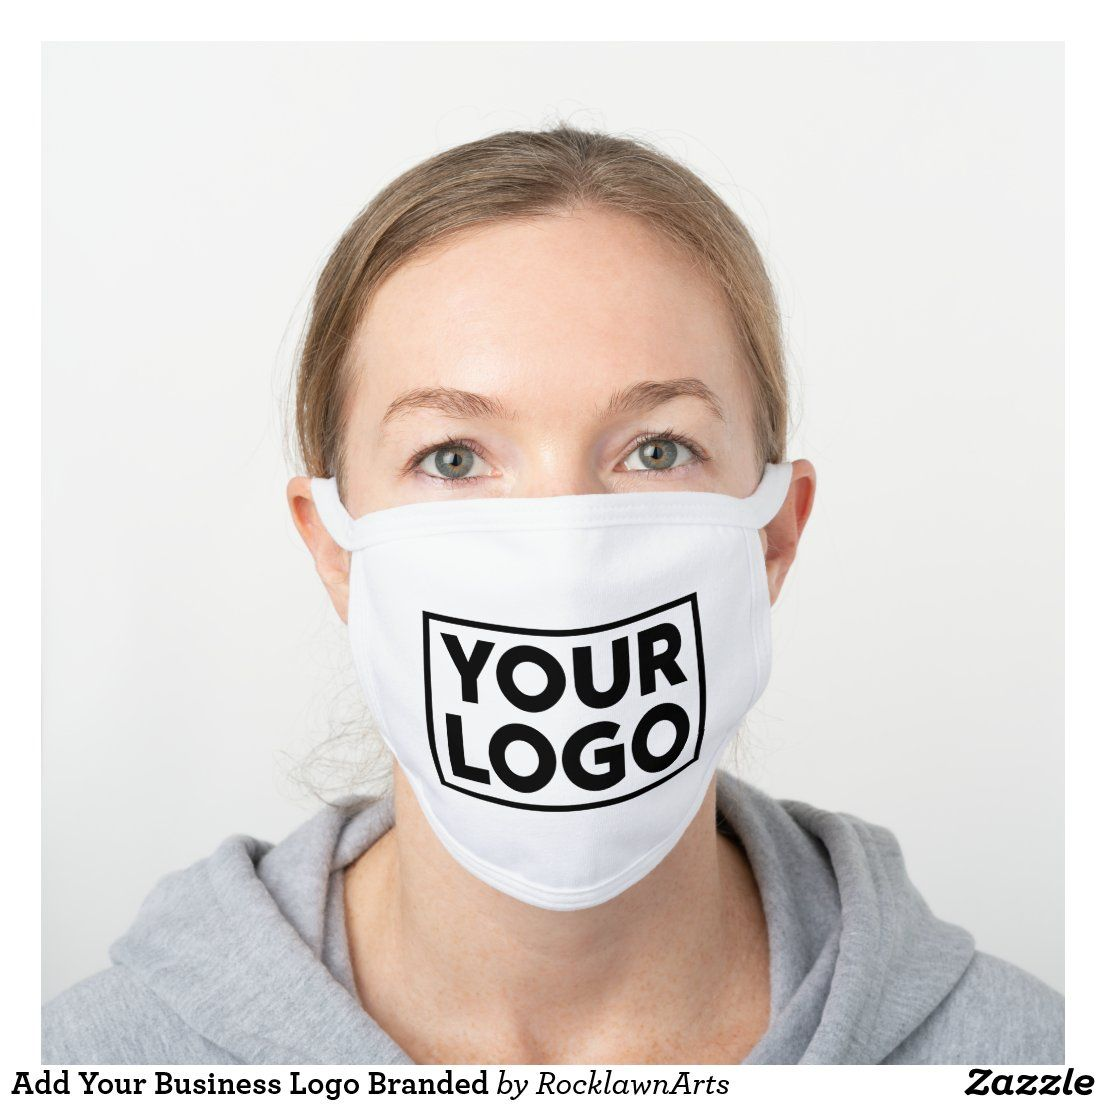 Add Your Business Logo Branded White Cotton Face Mask | Zazzle.com